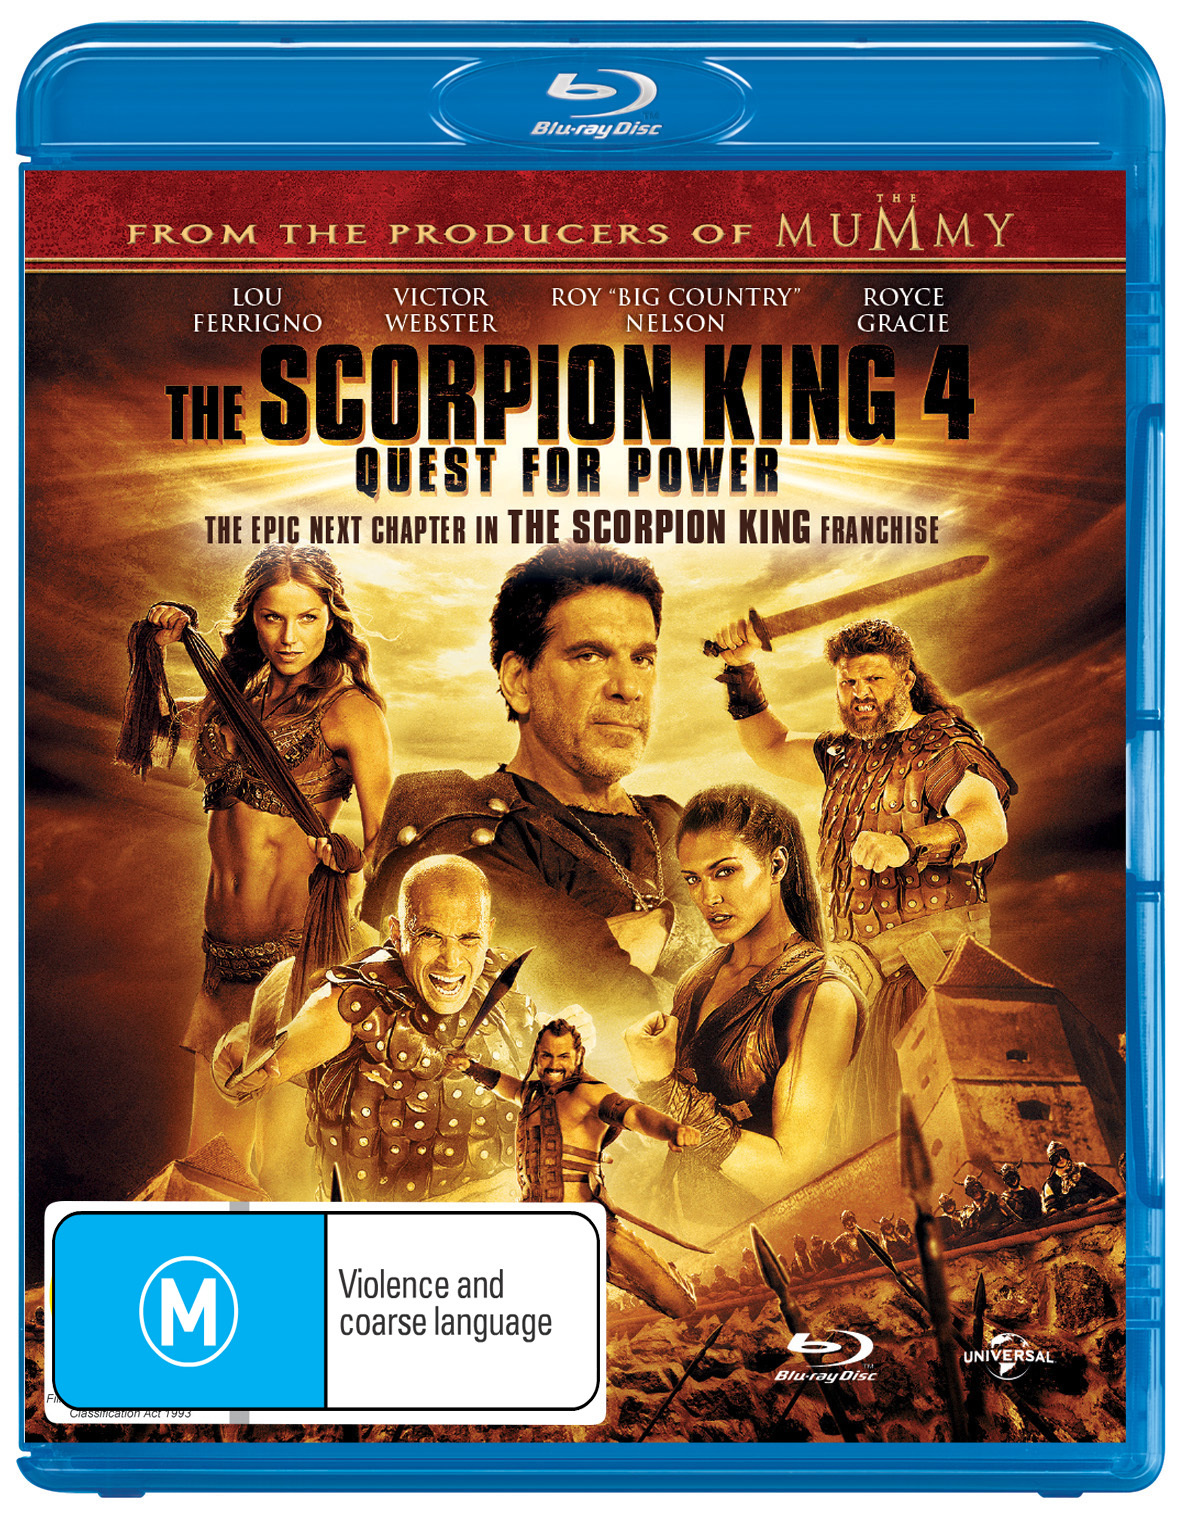 The Scorpion King 4: Quest for Power on Blu-ray image